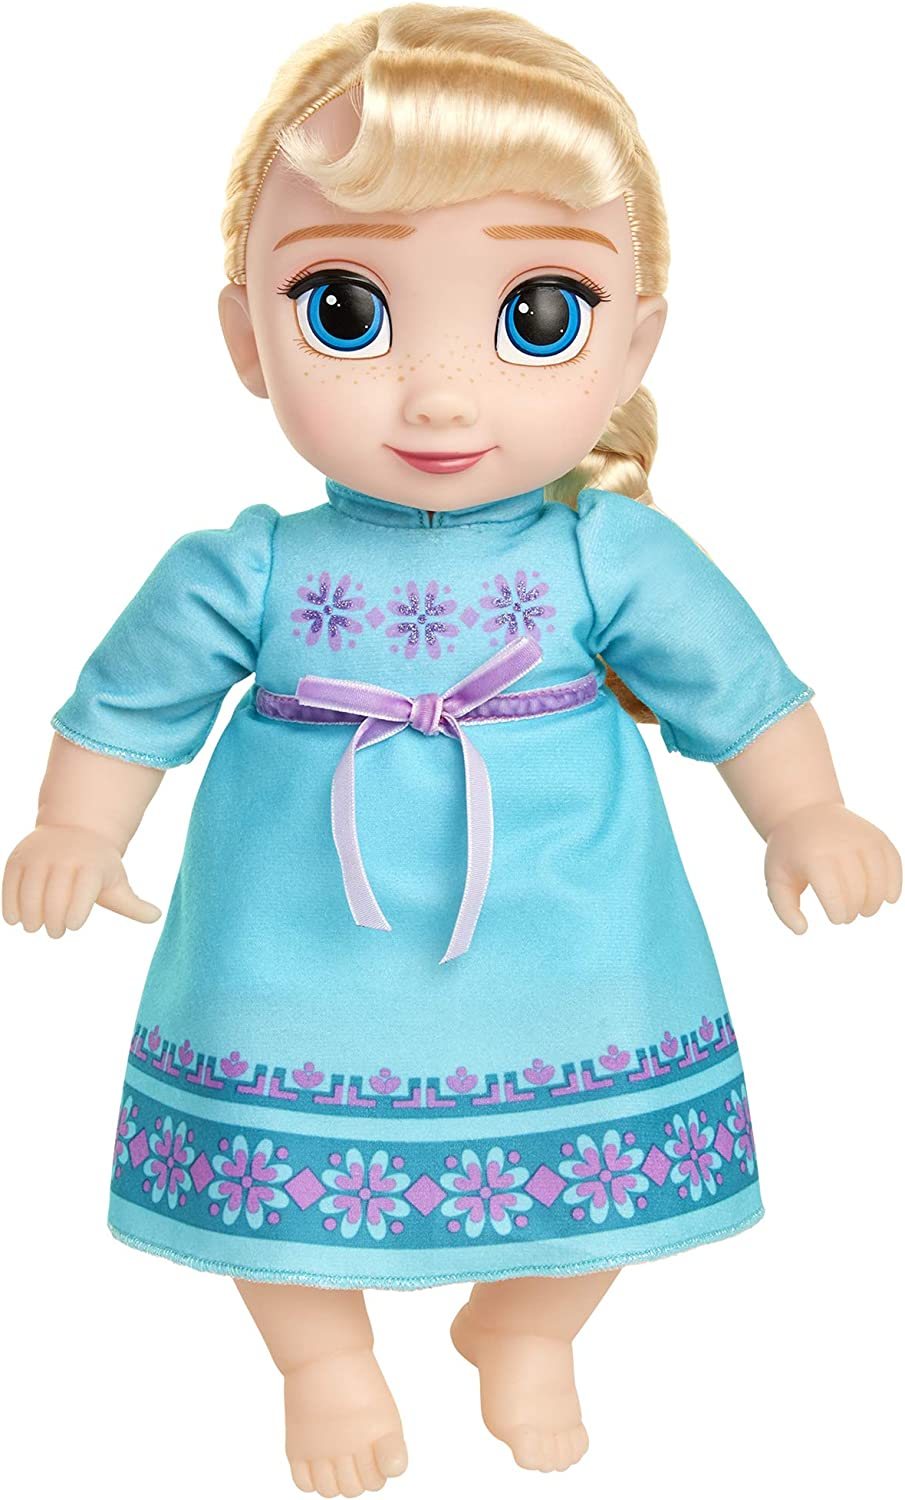 Die Eiskönigin 2 Reina de Hielo 2 – Baby Elsa color blanco, large (Jakks Pacific 203624) , color/modelo surtido